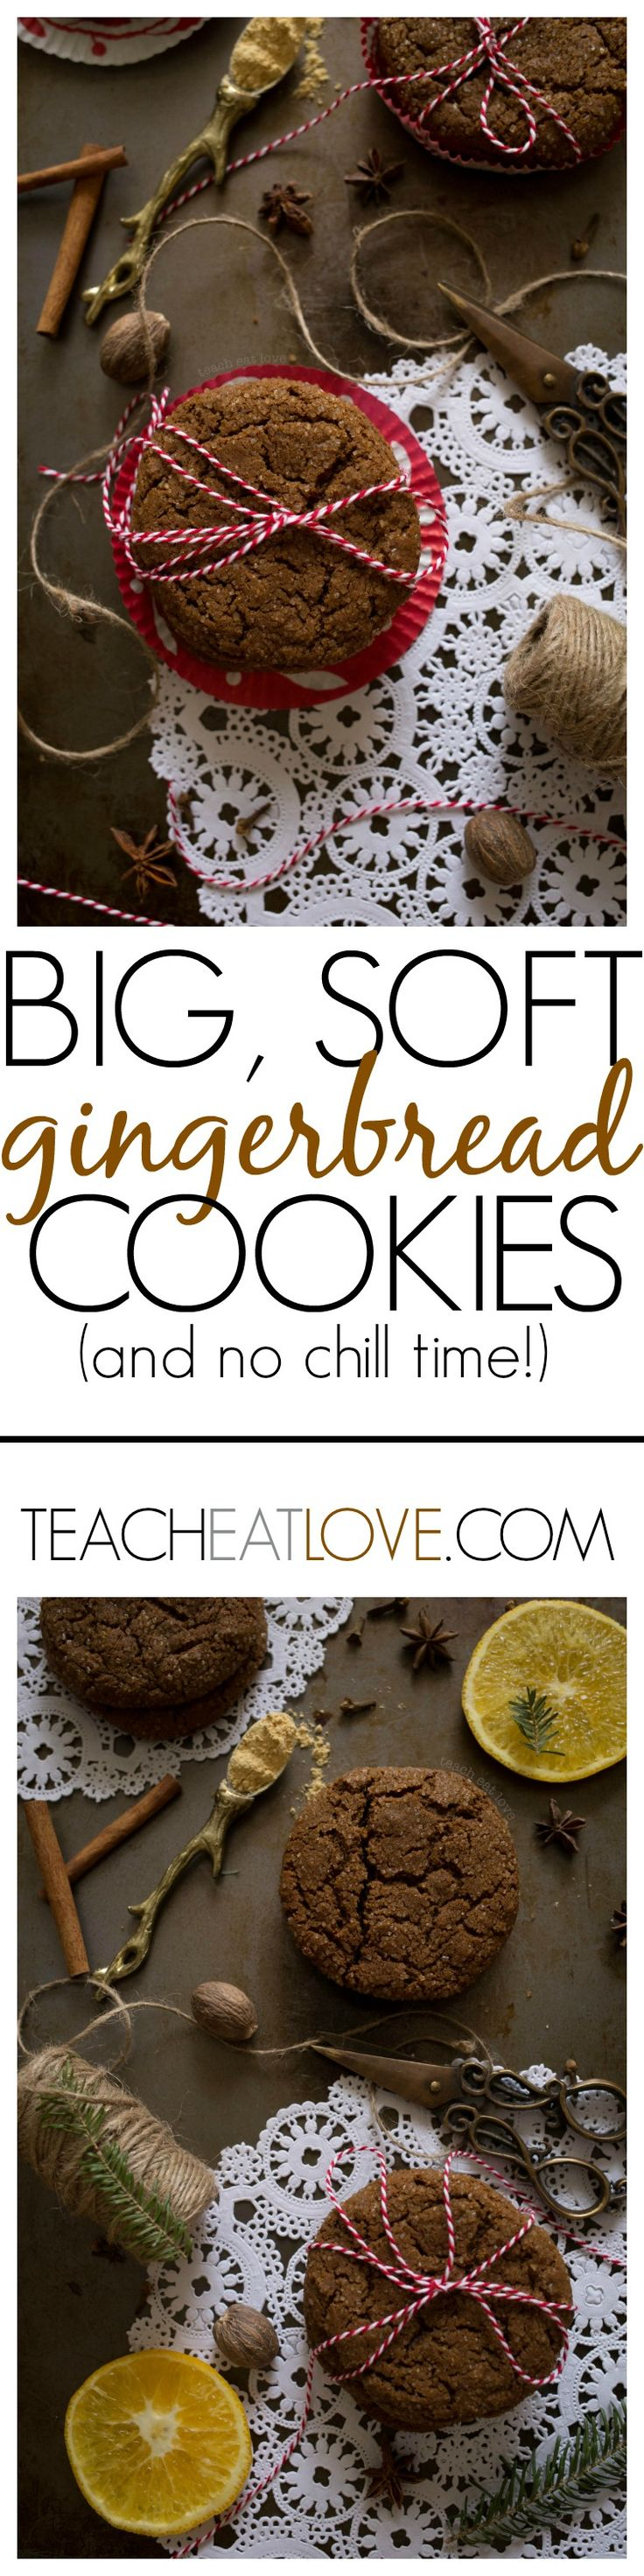 big, soft gingerbread cookie recipe with NO chill time (and no shortening!) www.teacheatlove.com